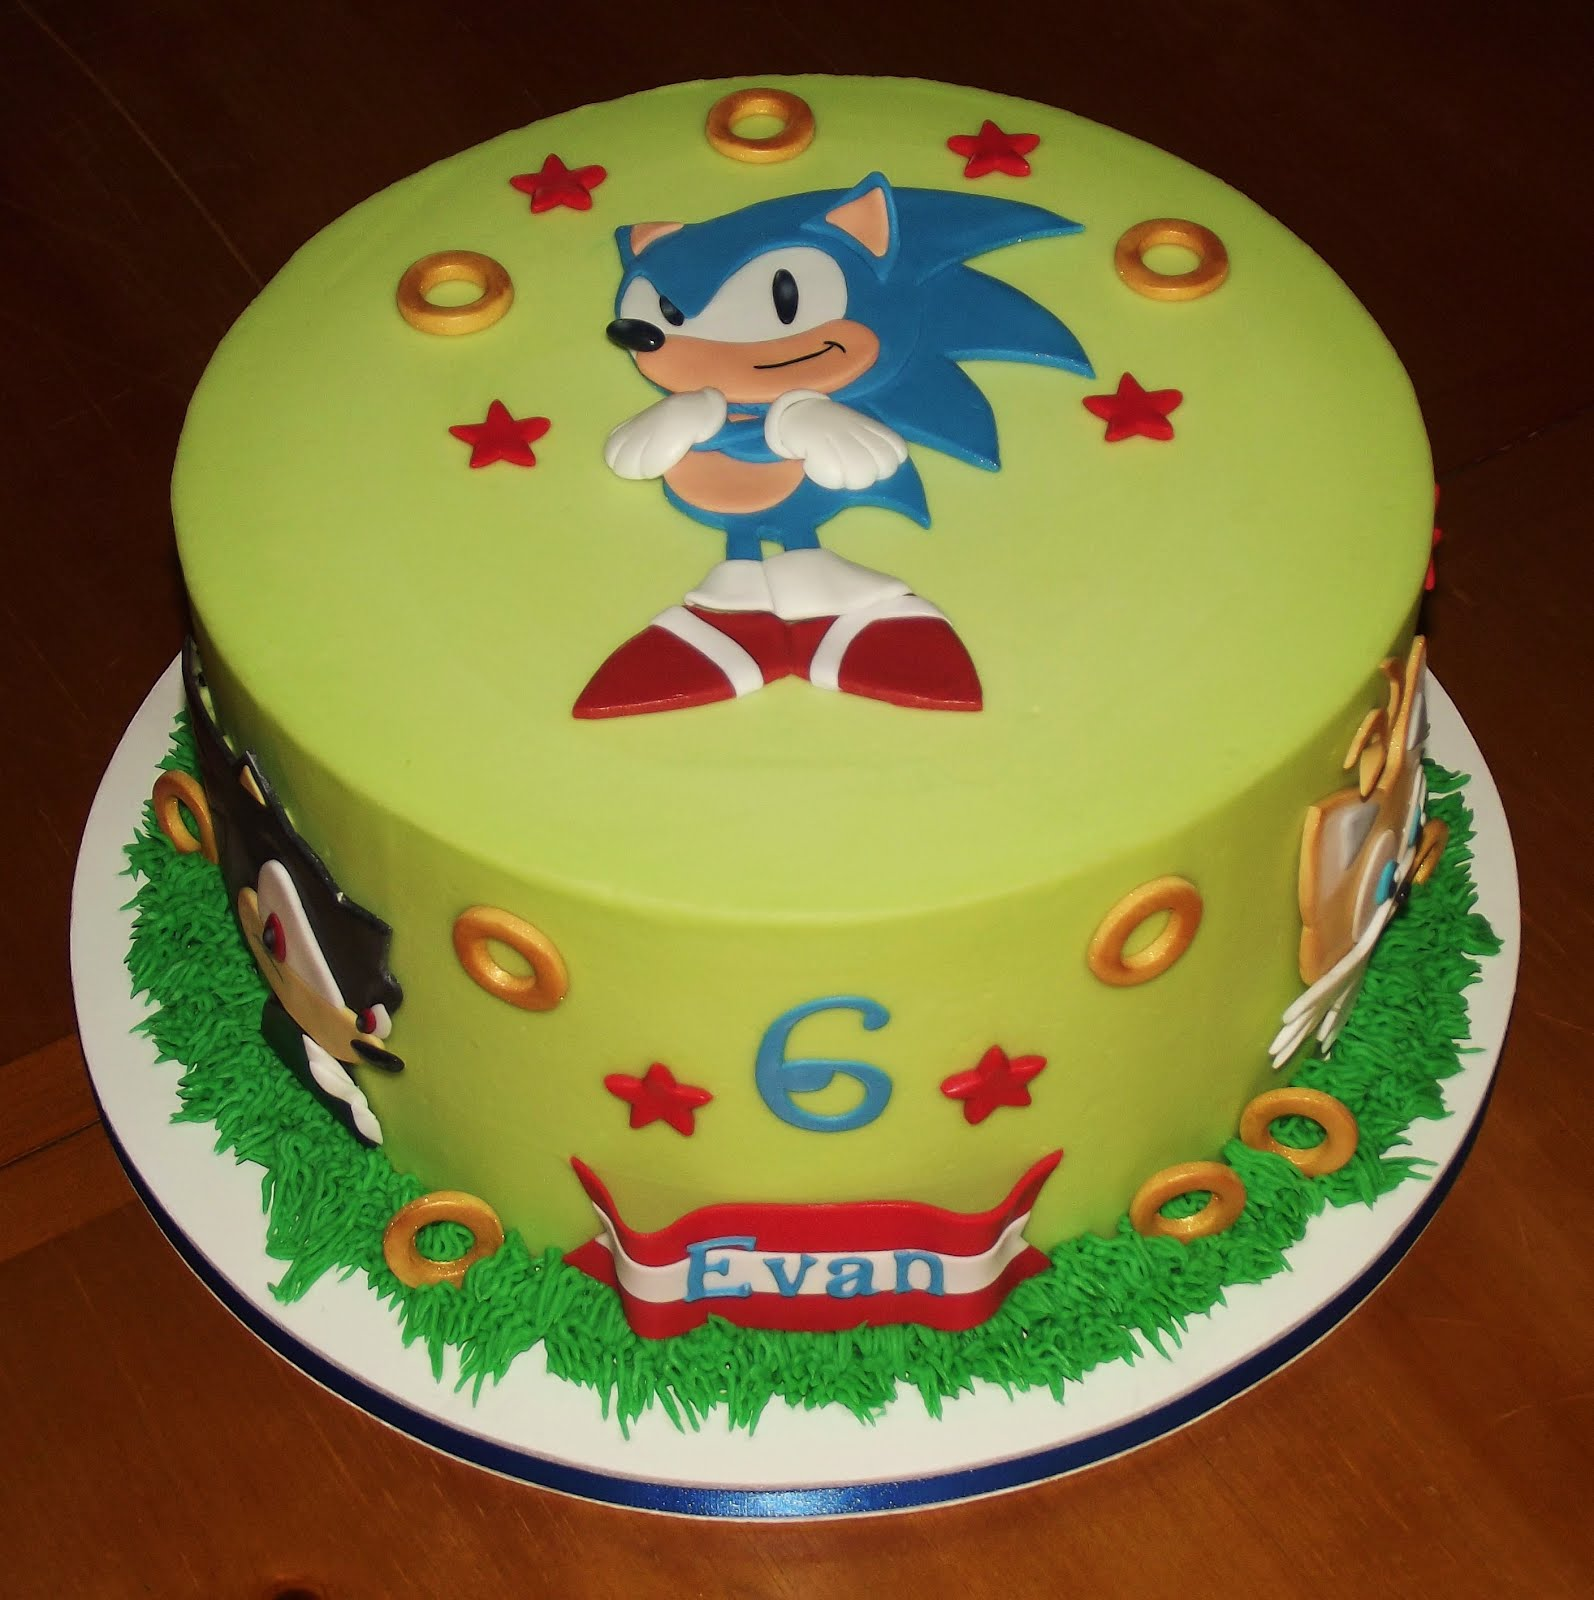 Strange Sonic Cakes Decoration Ideas Little Birthday Cakes Funny Birthday Cards Online Bapapcheapnameinfo